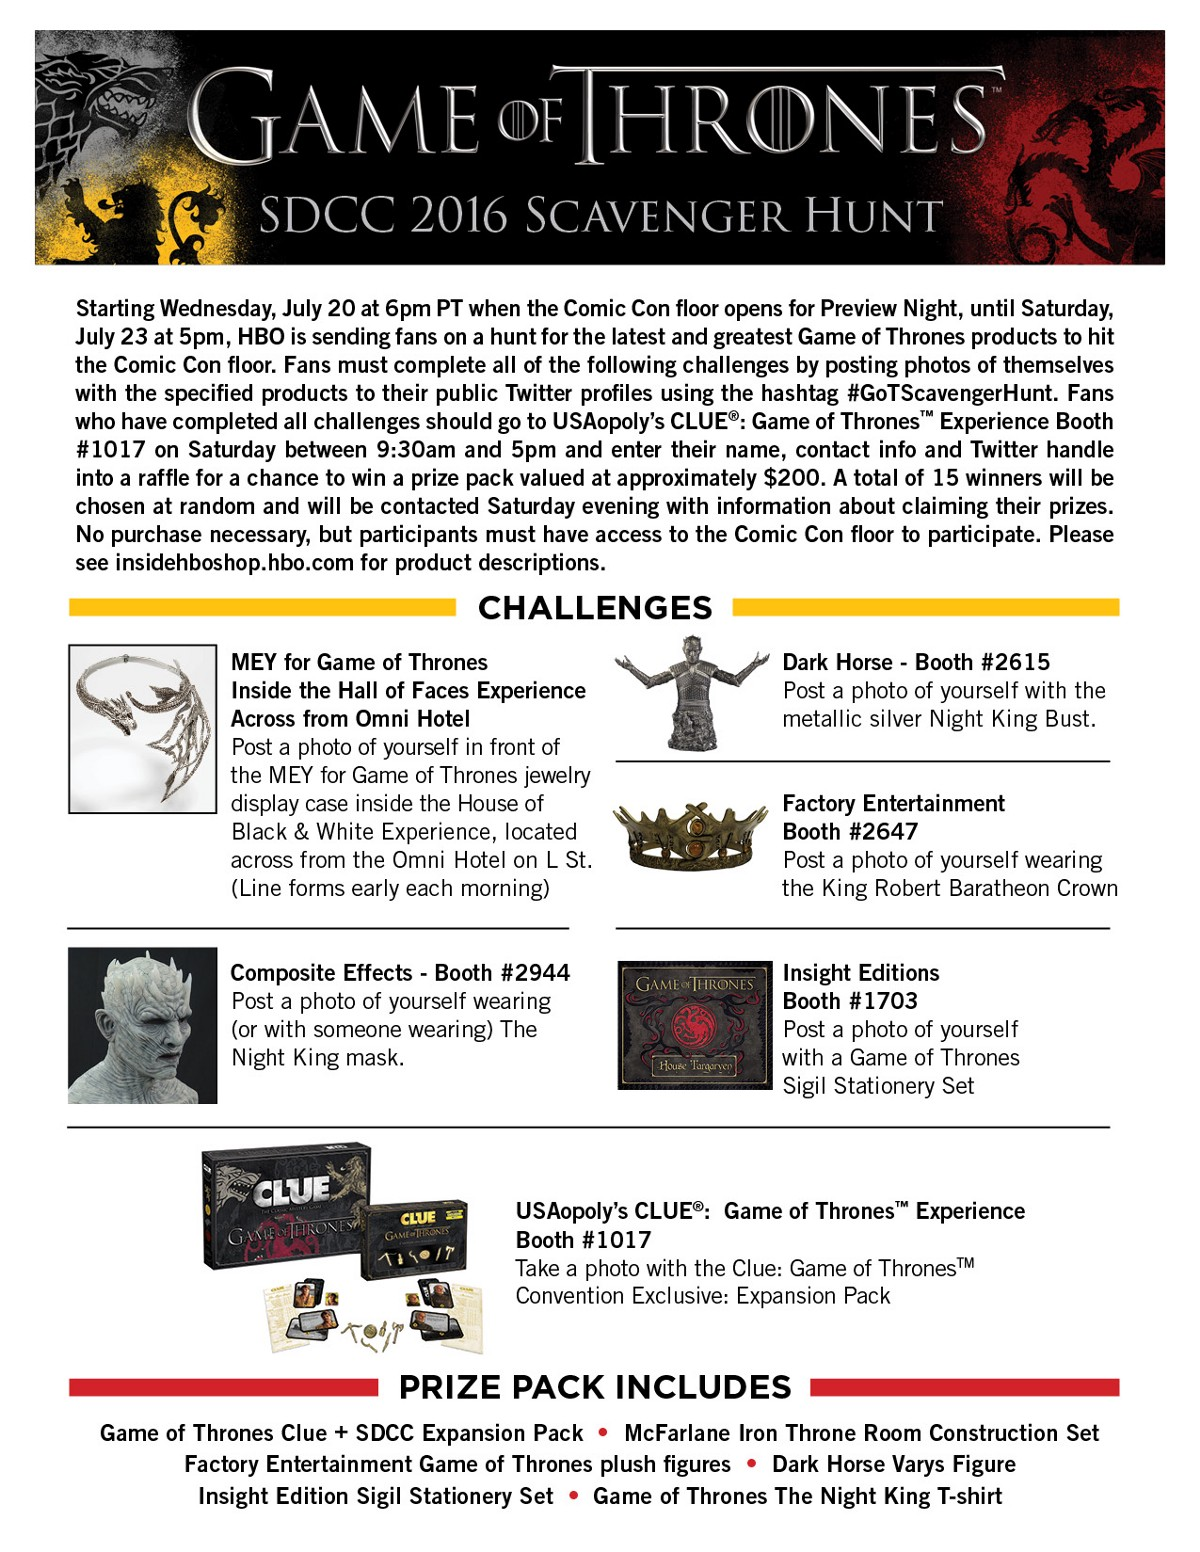 Hbo global licensing announces game of thrones scavenger hunt at san in a comic con scavenger hunt sending them on a quest to find some of the coolest game of thrones products available on the comic con floor solutioingenieria Gallery